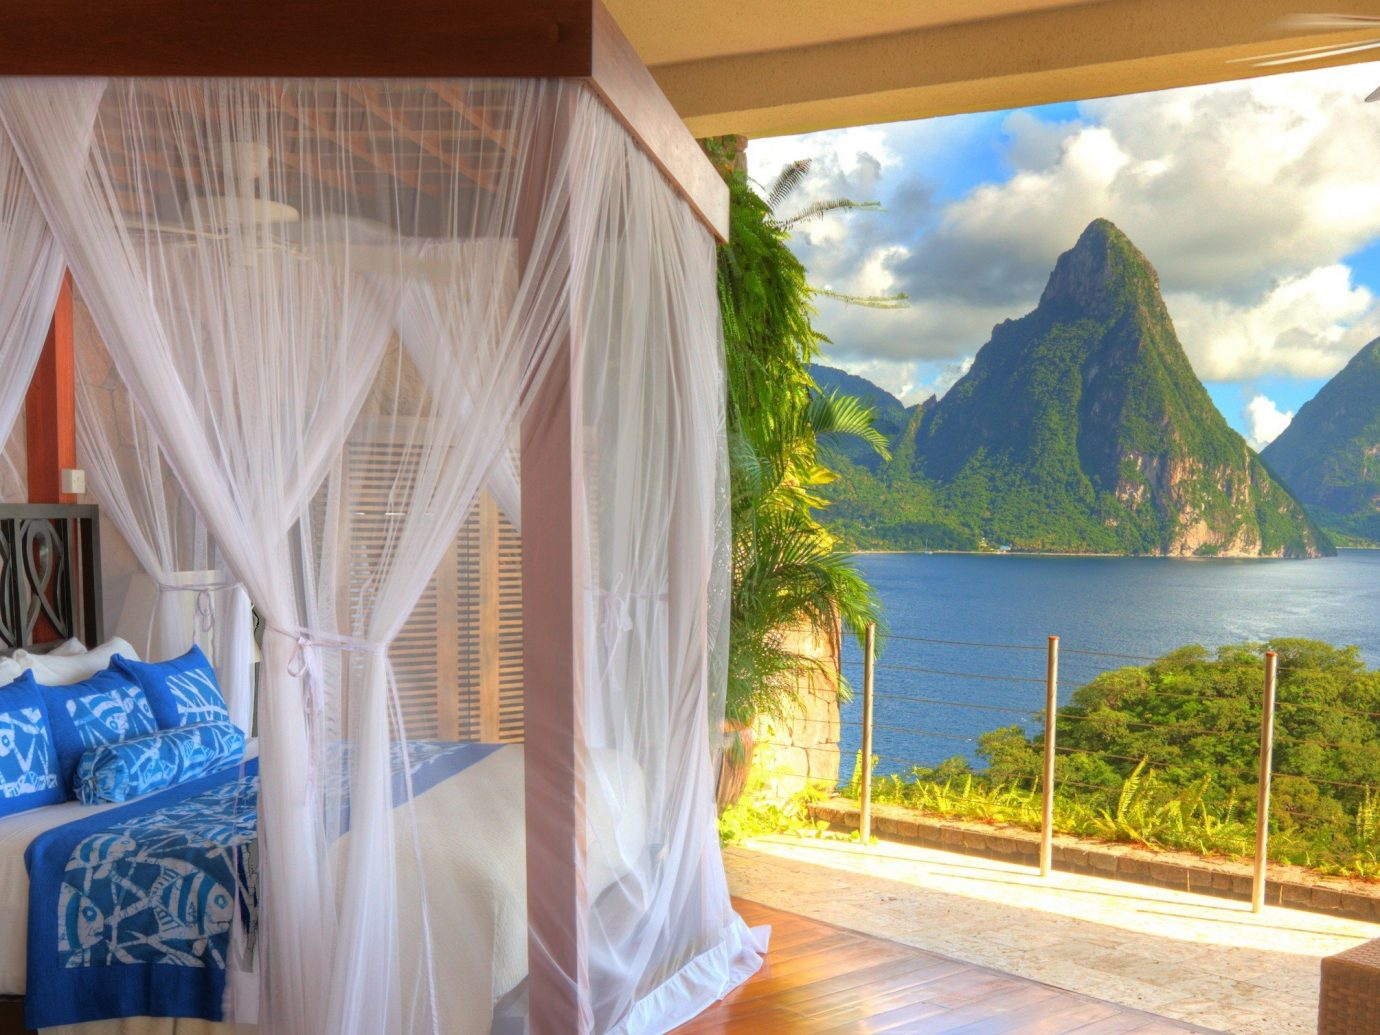 Beach Islands Luxury Travel Trip Ideas mosquito net mountain property wall interior design home window real estate window treatment vacation curtain Resort mural leisure house estate hotel shade